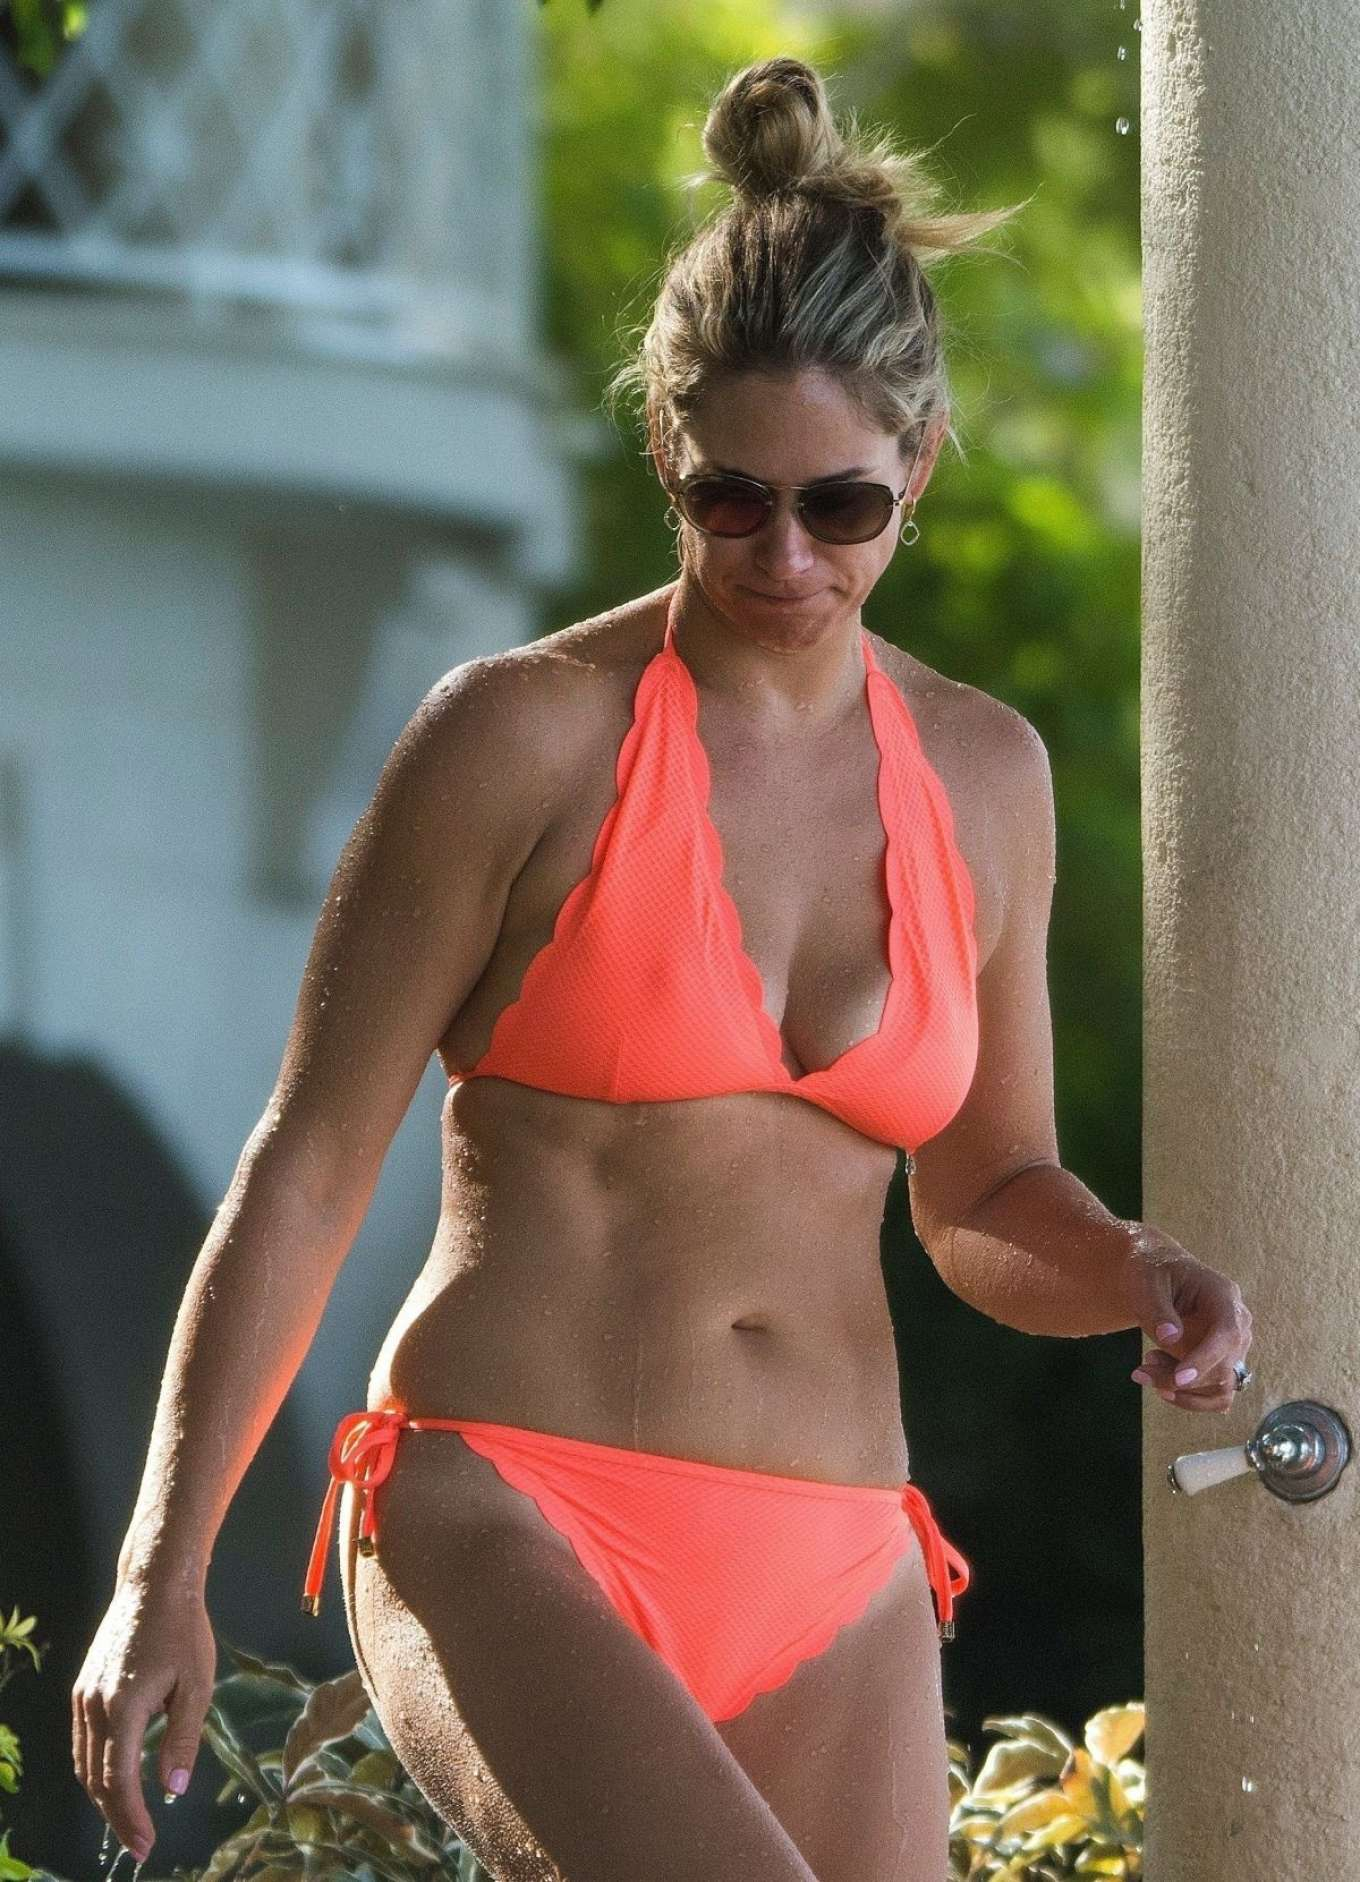 Chanelle Mccoy in Orange Bikini in Barbados